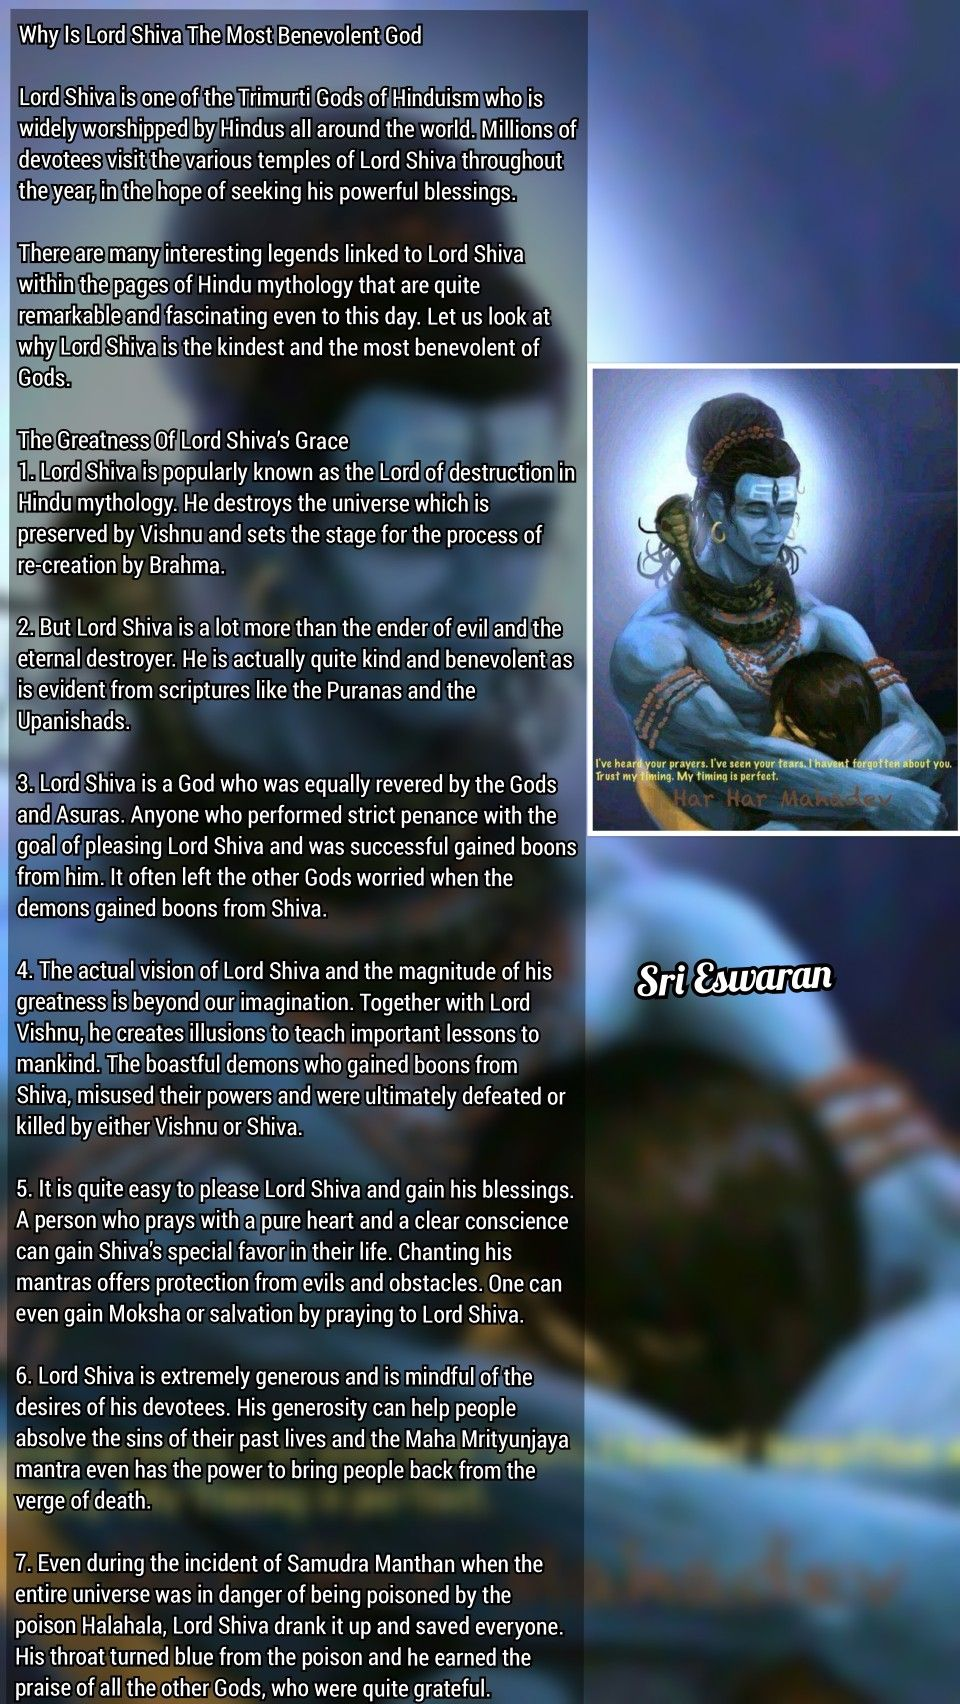 Why Is Lord Shiva The Most Benevolent God Lord Shiva is one of the